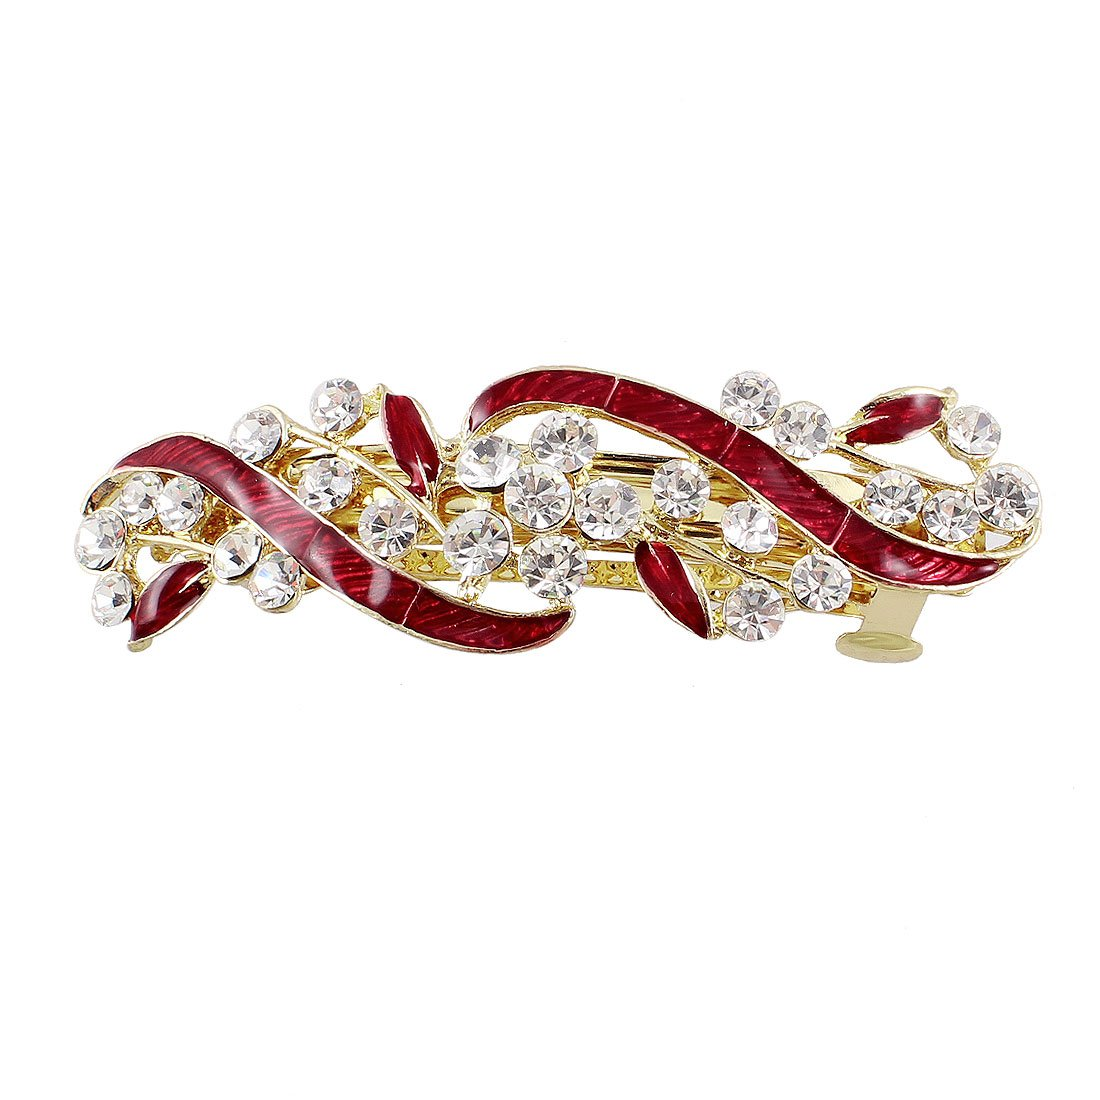 uxcell Sparkle Rhinestone Decor Red Metal Leaves Design French Clip Barrette for Women a13020100ux0241